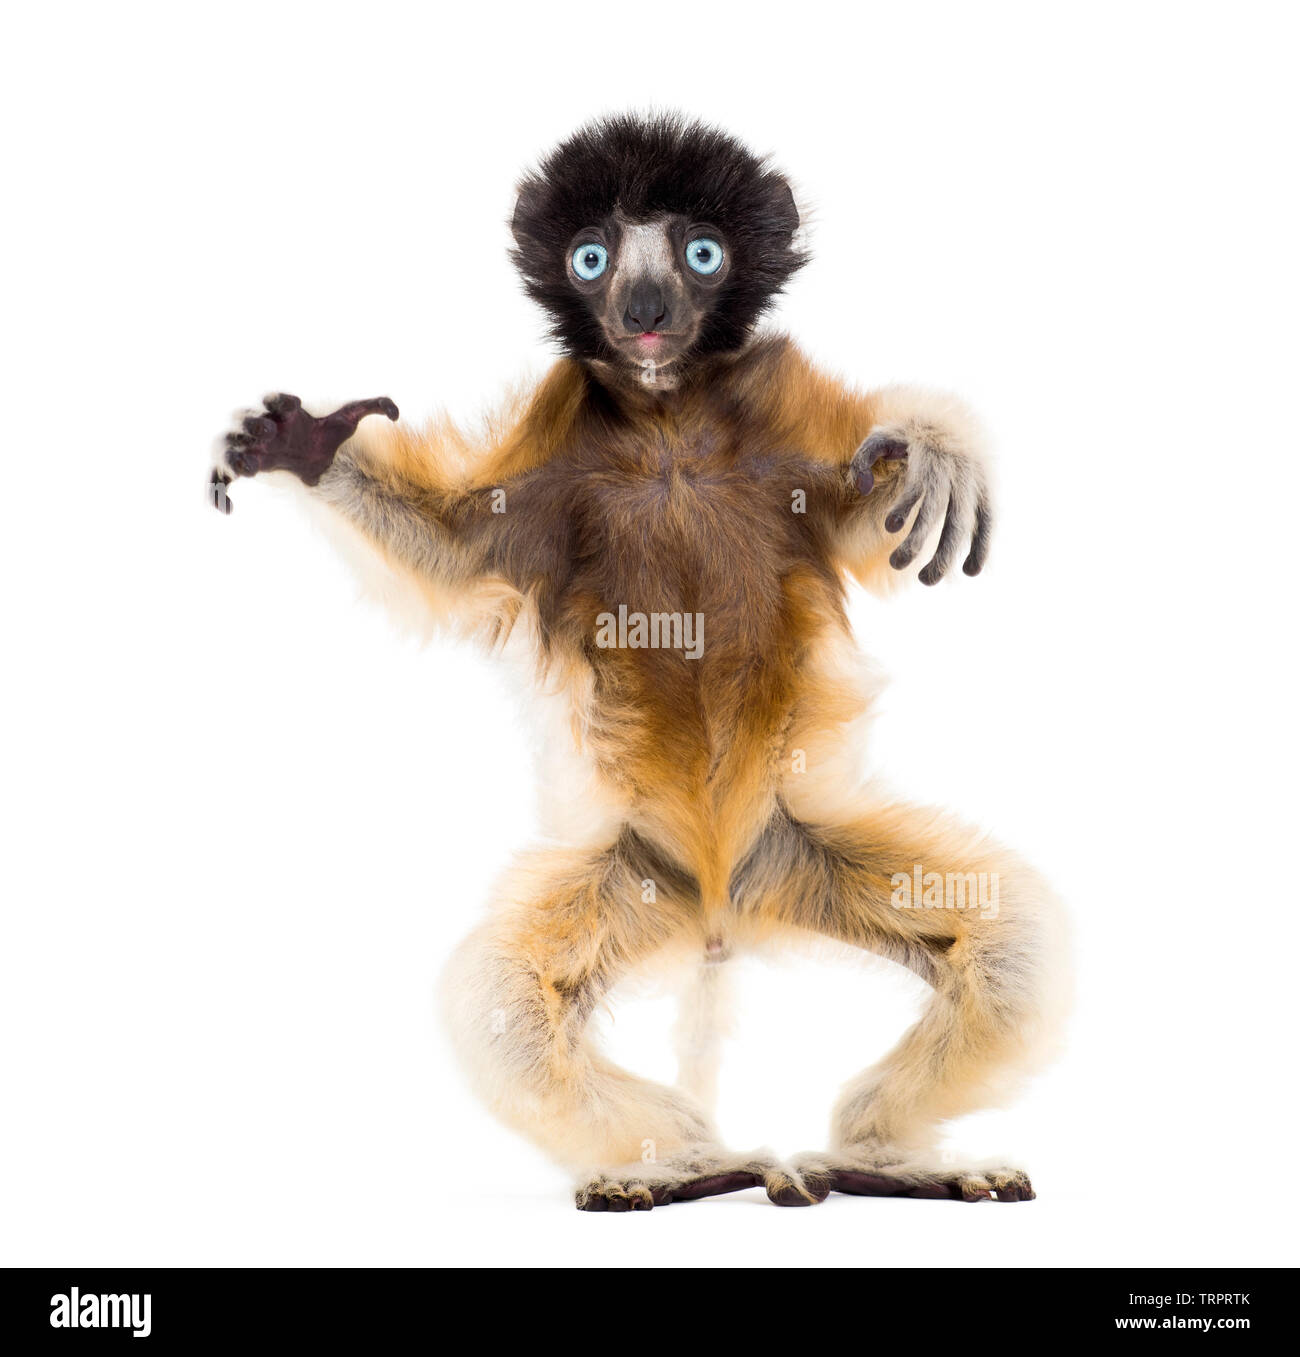 Soa, 4 months old, Crowned Sifaka standing against white background Stock Photo